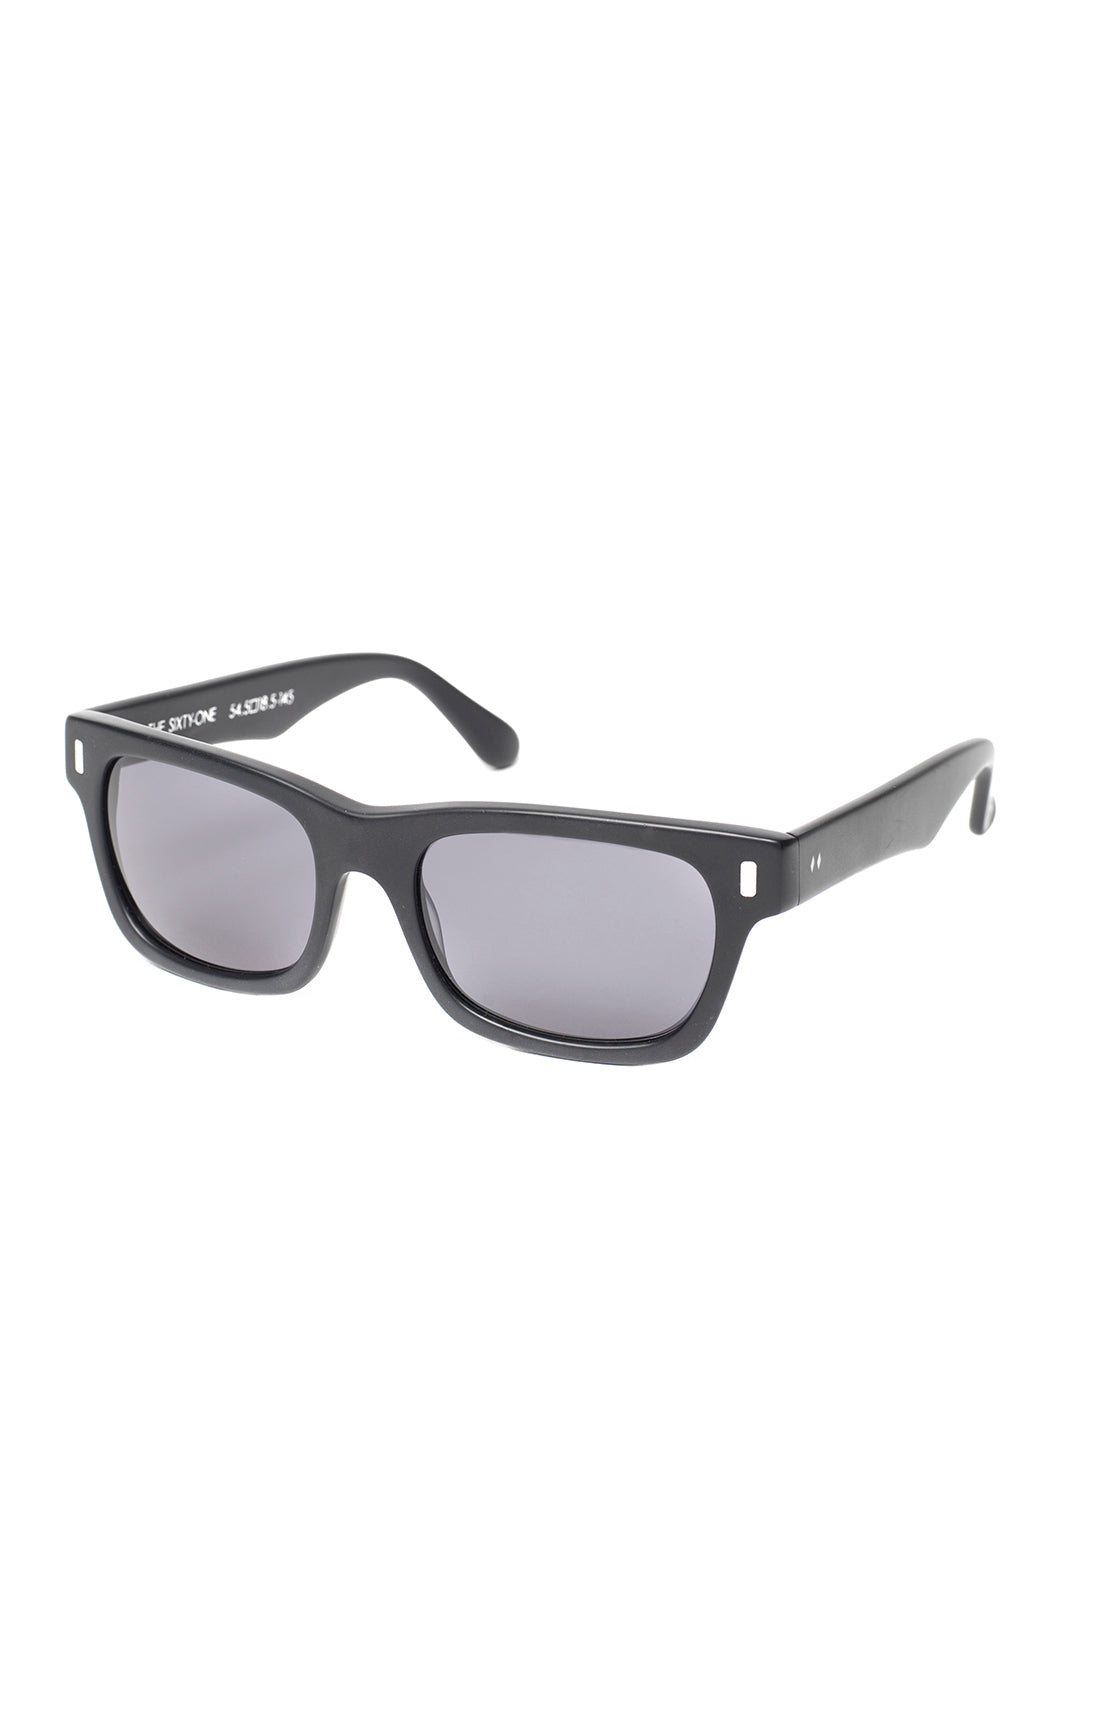 The SIXTY ONE Sunglasses - MATTE BLACK Frames w/ Smoke Lenses